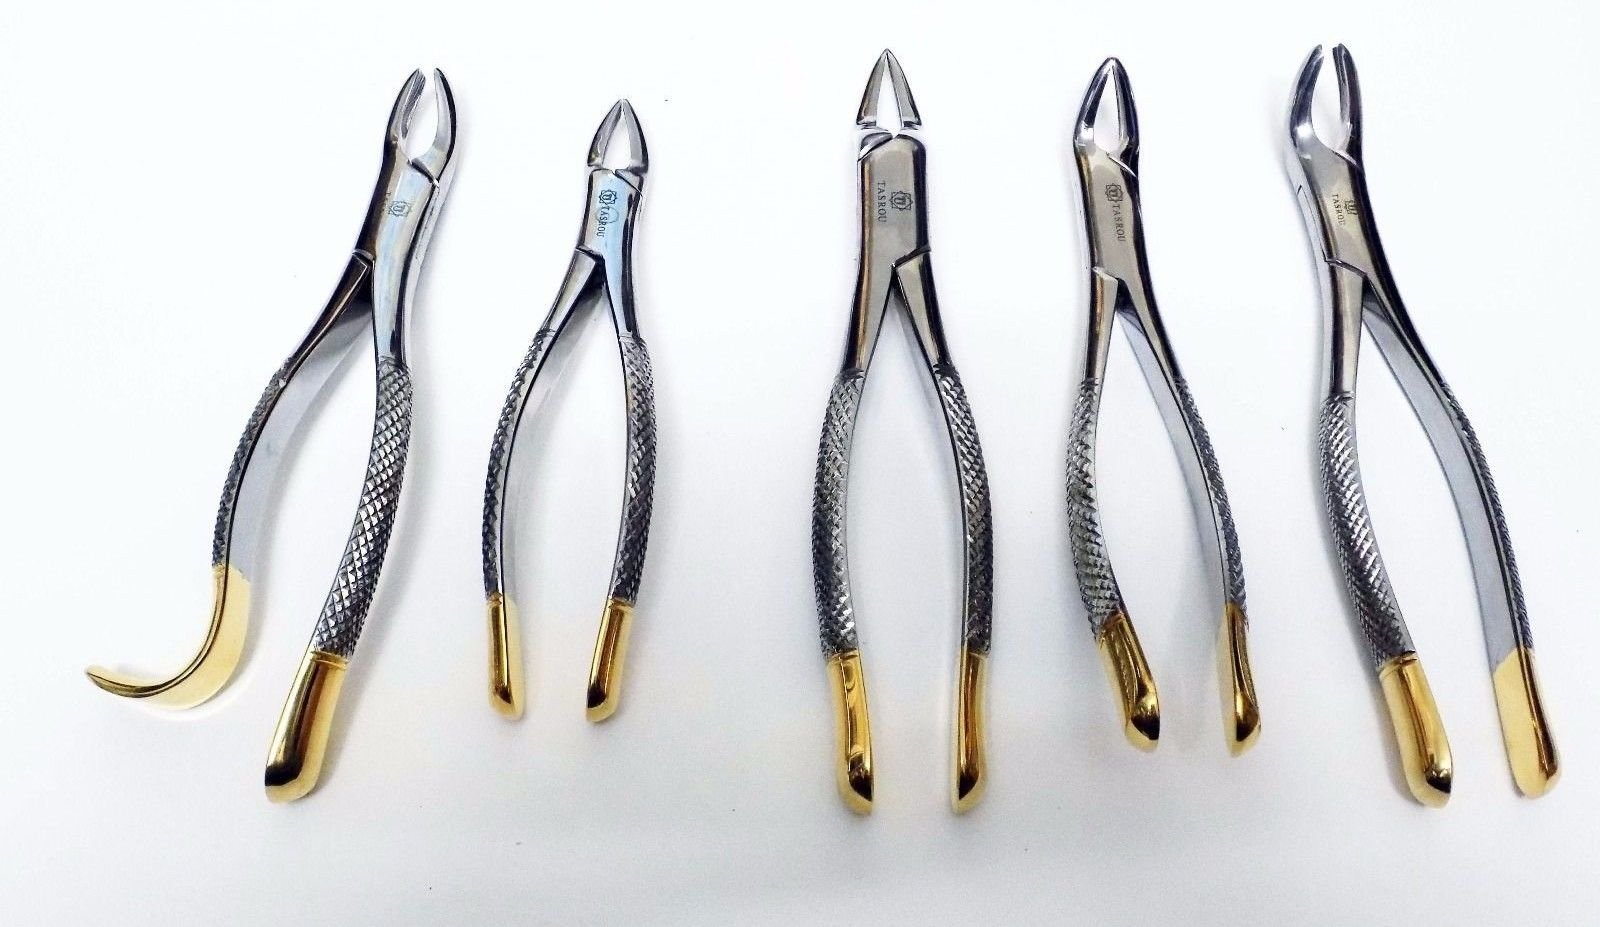 Tooth Extracting Forceps Gold Platted Handle Set of 5pc Dental Instrument Tasrou